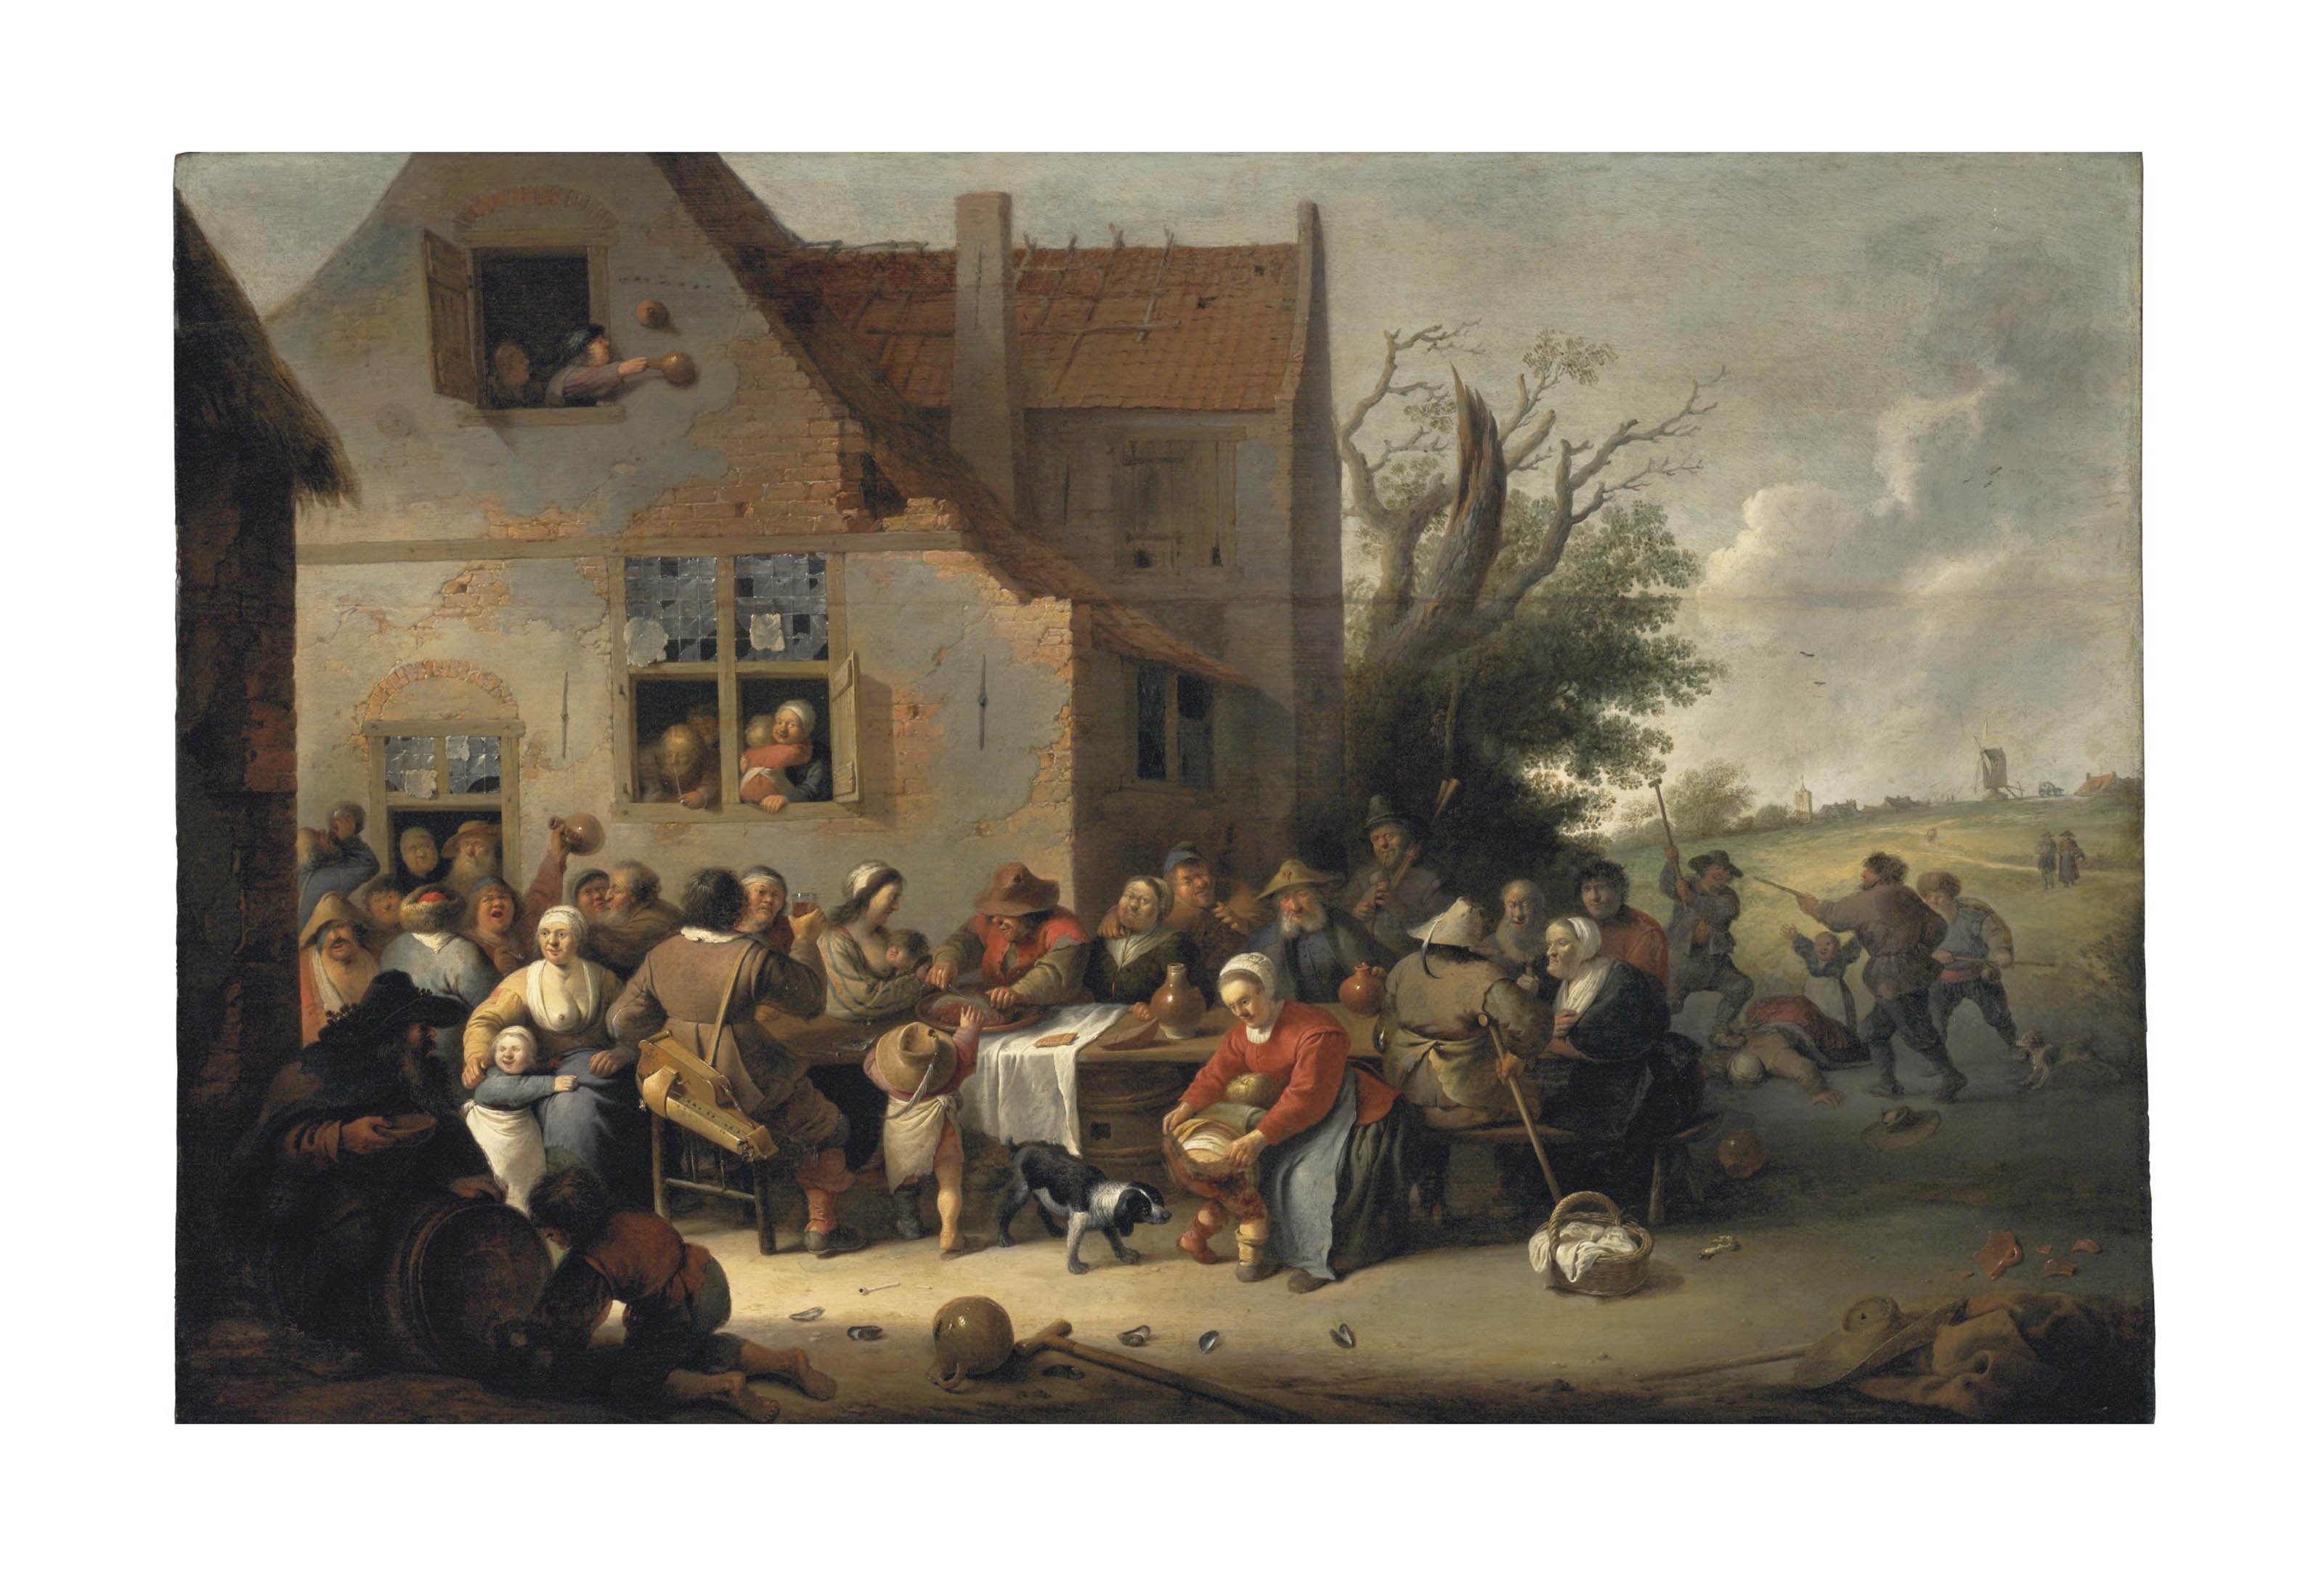 Peasants making merry outside an inn